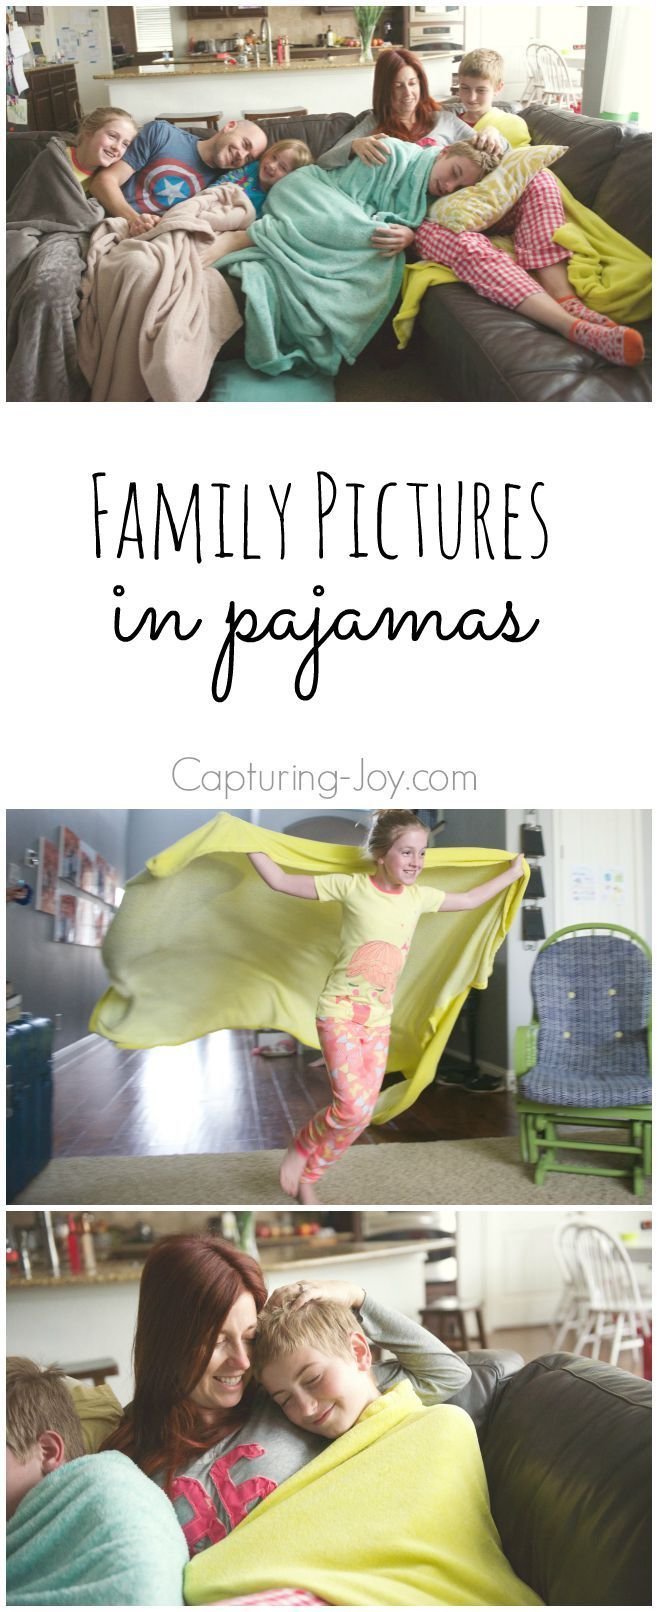 People in Pajamas | Pajamas, Family pictures and Lifestyle photography